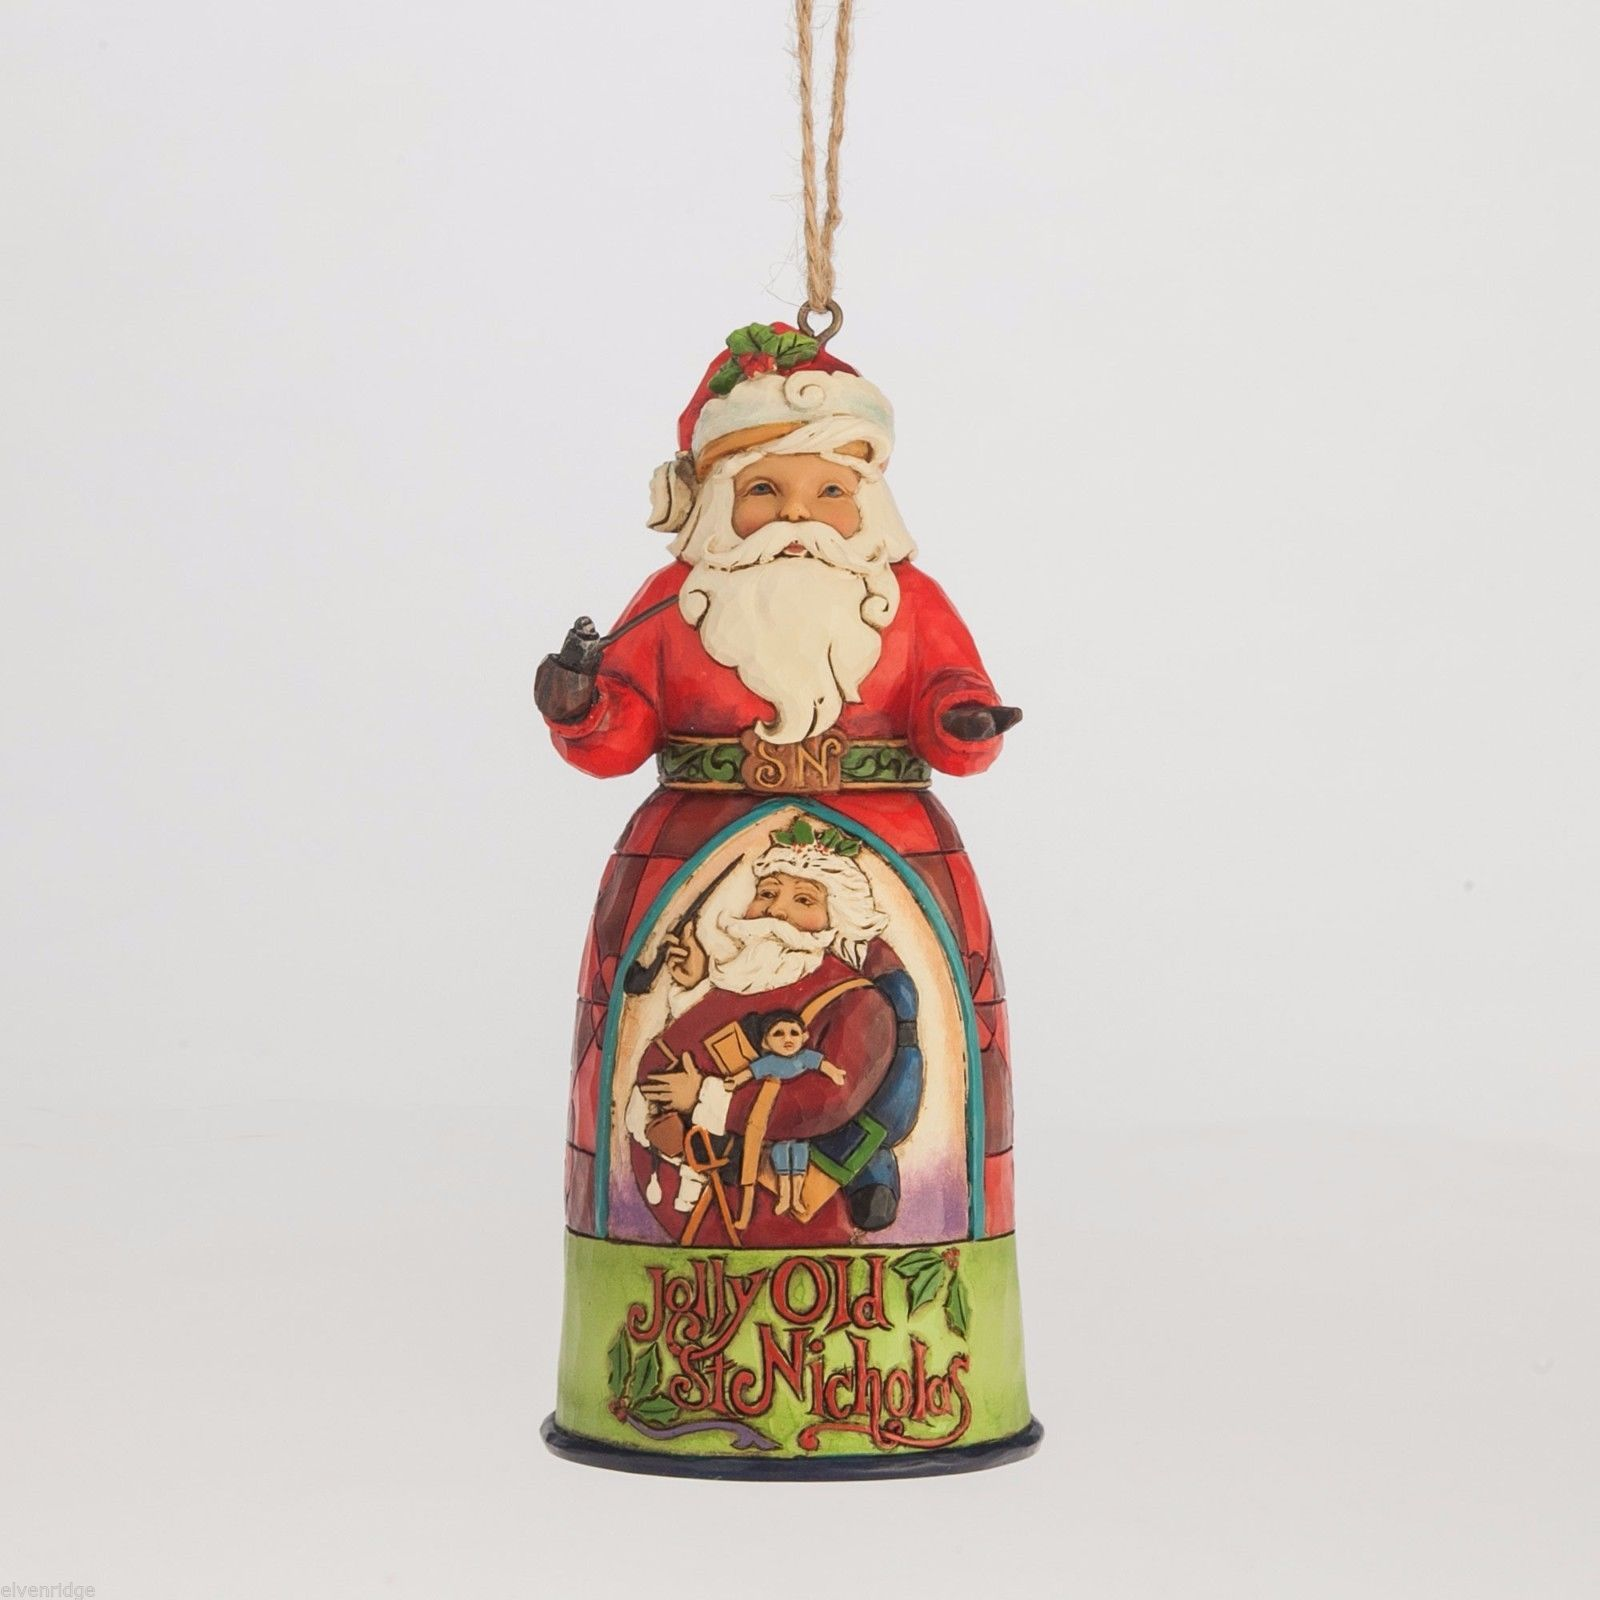 Jim Shore Hanging Ornament Jolly Old St. Nicholas New in Box